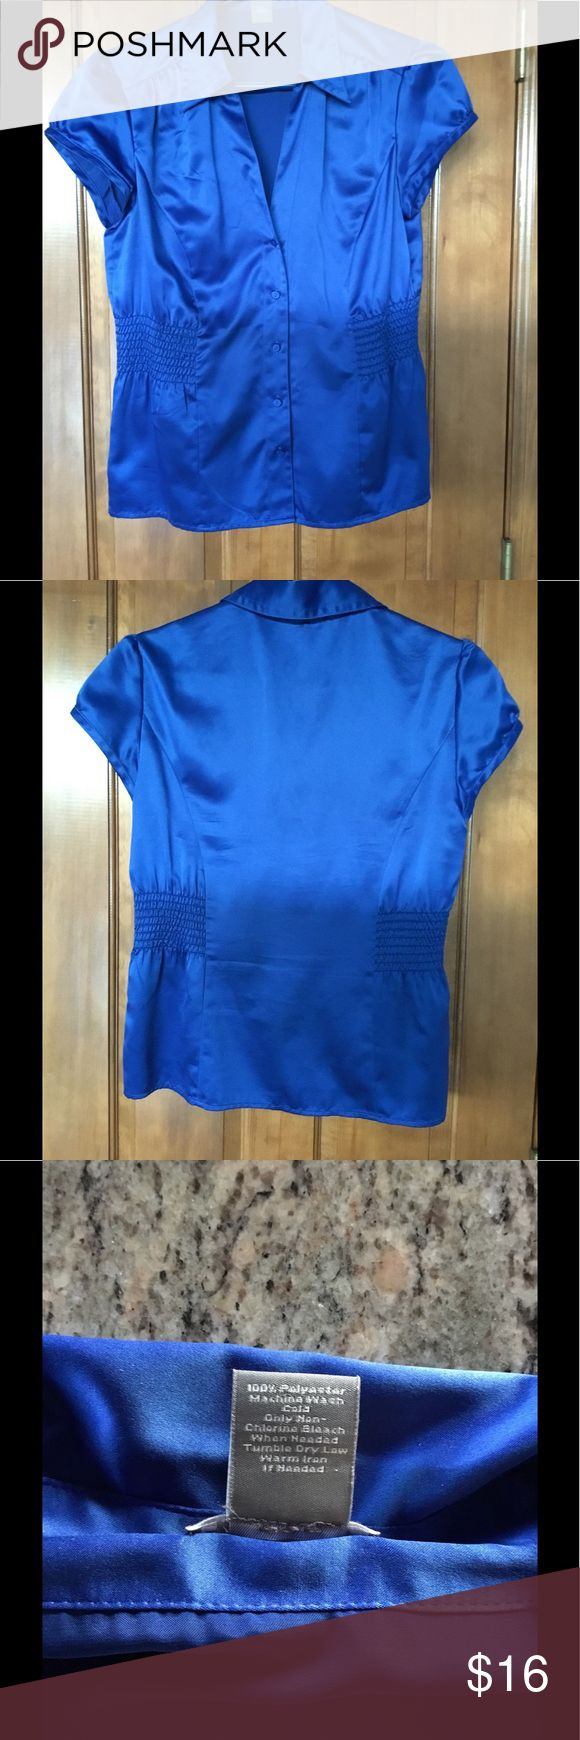 Ann Taylor Blouse Beautiful royal blue 5 front button with collar and smocking at waist sides. Cap sleeves. Would go well black or neutral colored business suit, or would look equally great with jeans. Excellent used condition. Ann Taylor Tops Blouses